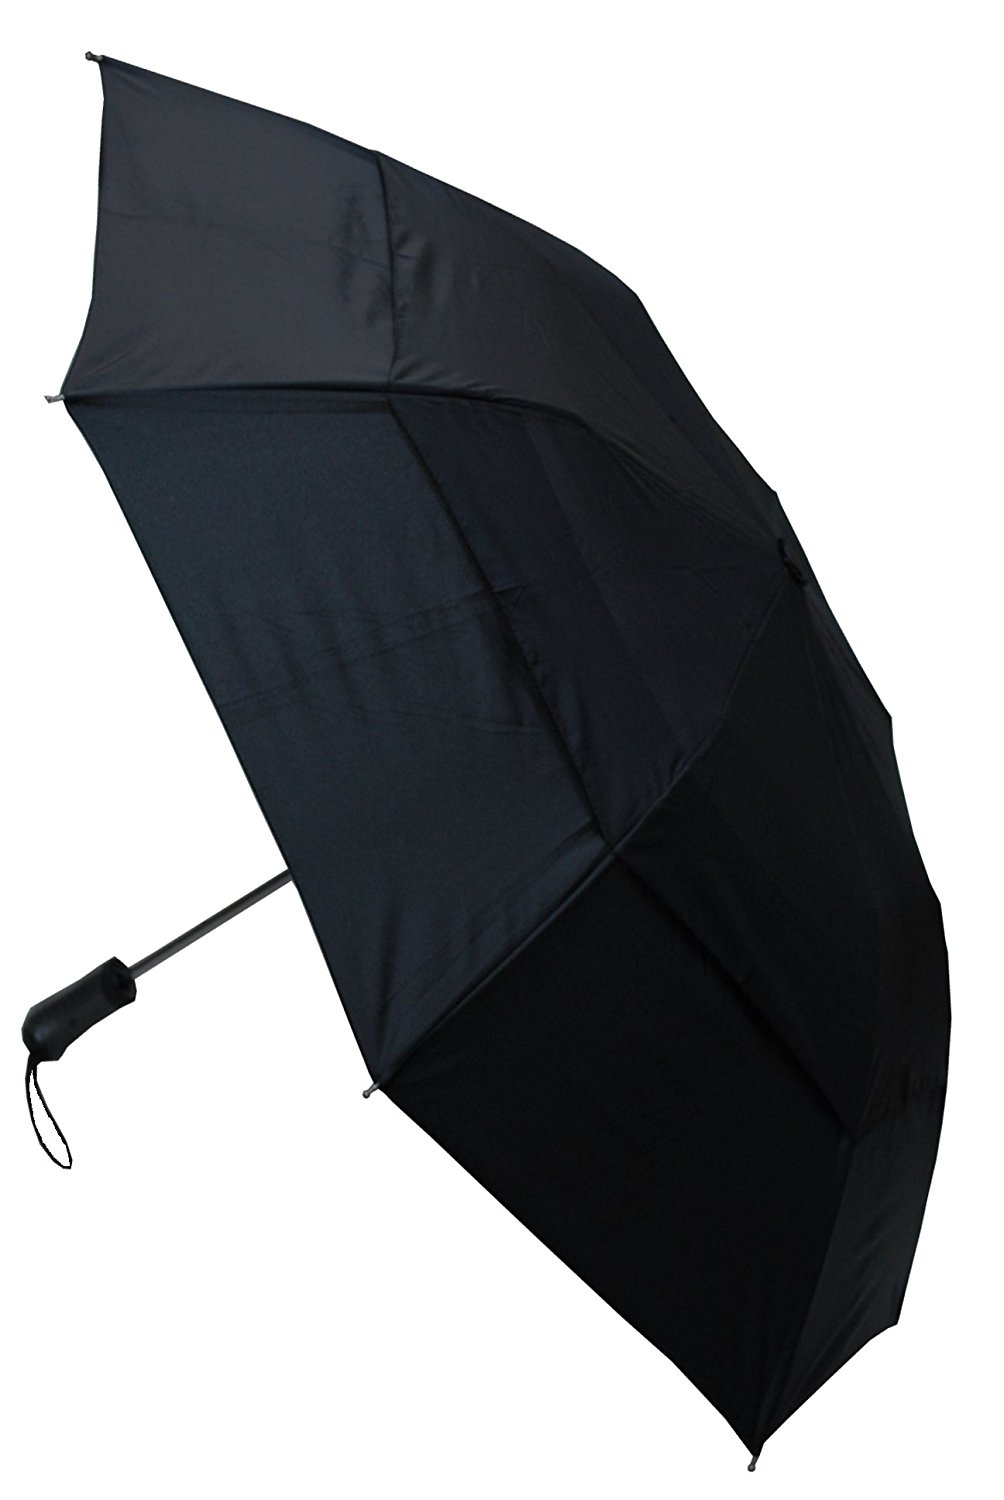 COLLAR AND CUFFS LONDON - Windproof EXTRA STRONG StormProtector Pro Folding Umbrella - Vented Canopy - HIGHLY ENGINEERED TO COMBAT INVERSION DAMAGE - Automatic Open - Medium - 2 Fold - Bi-Fold - Black